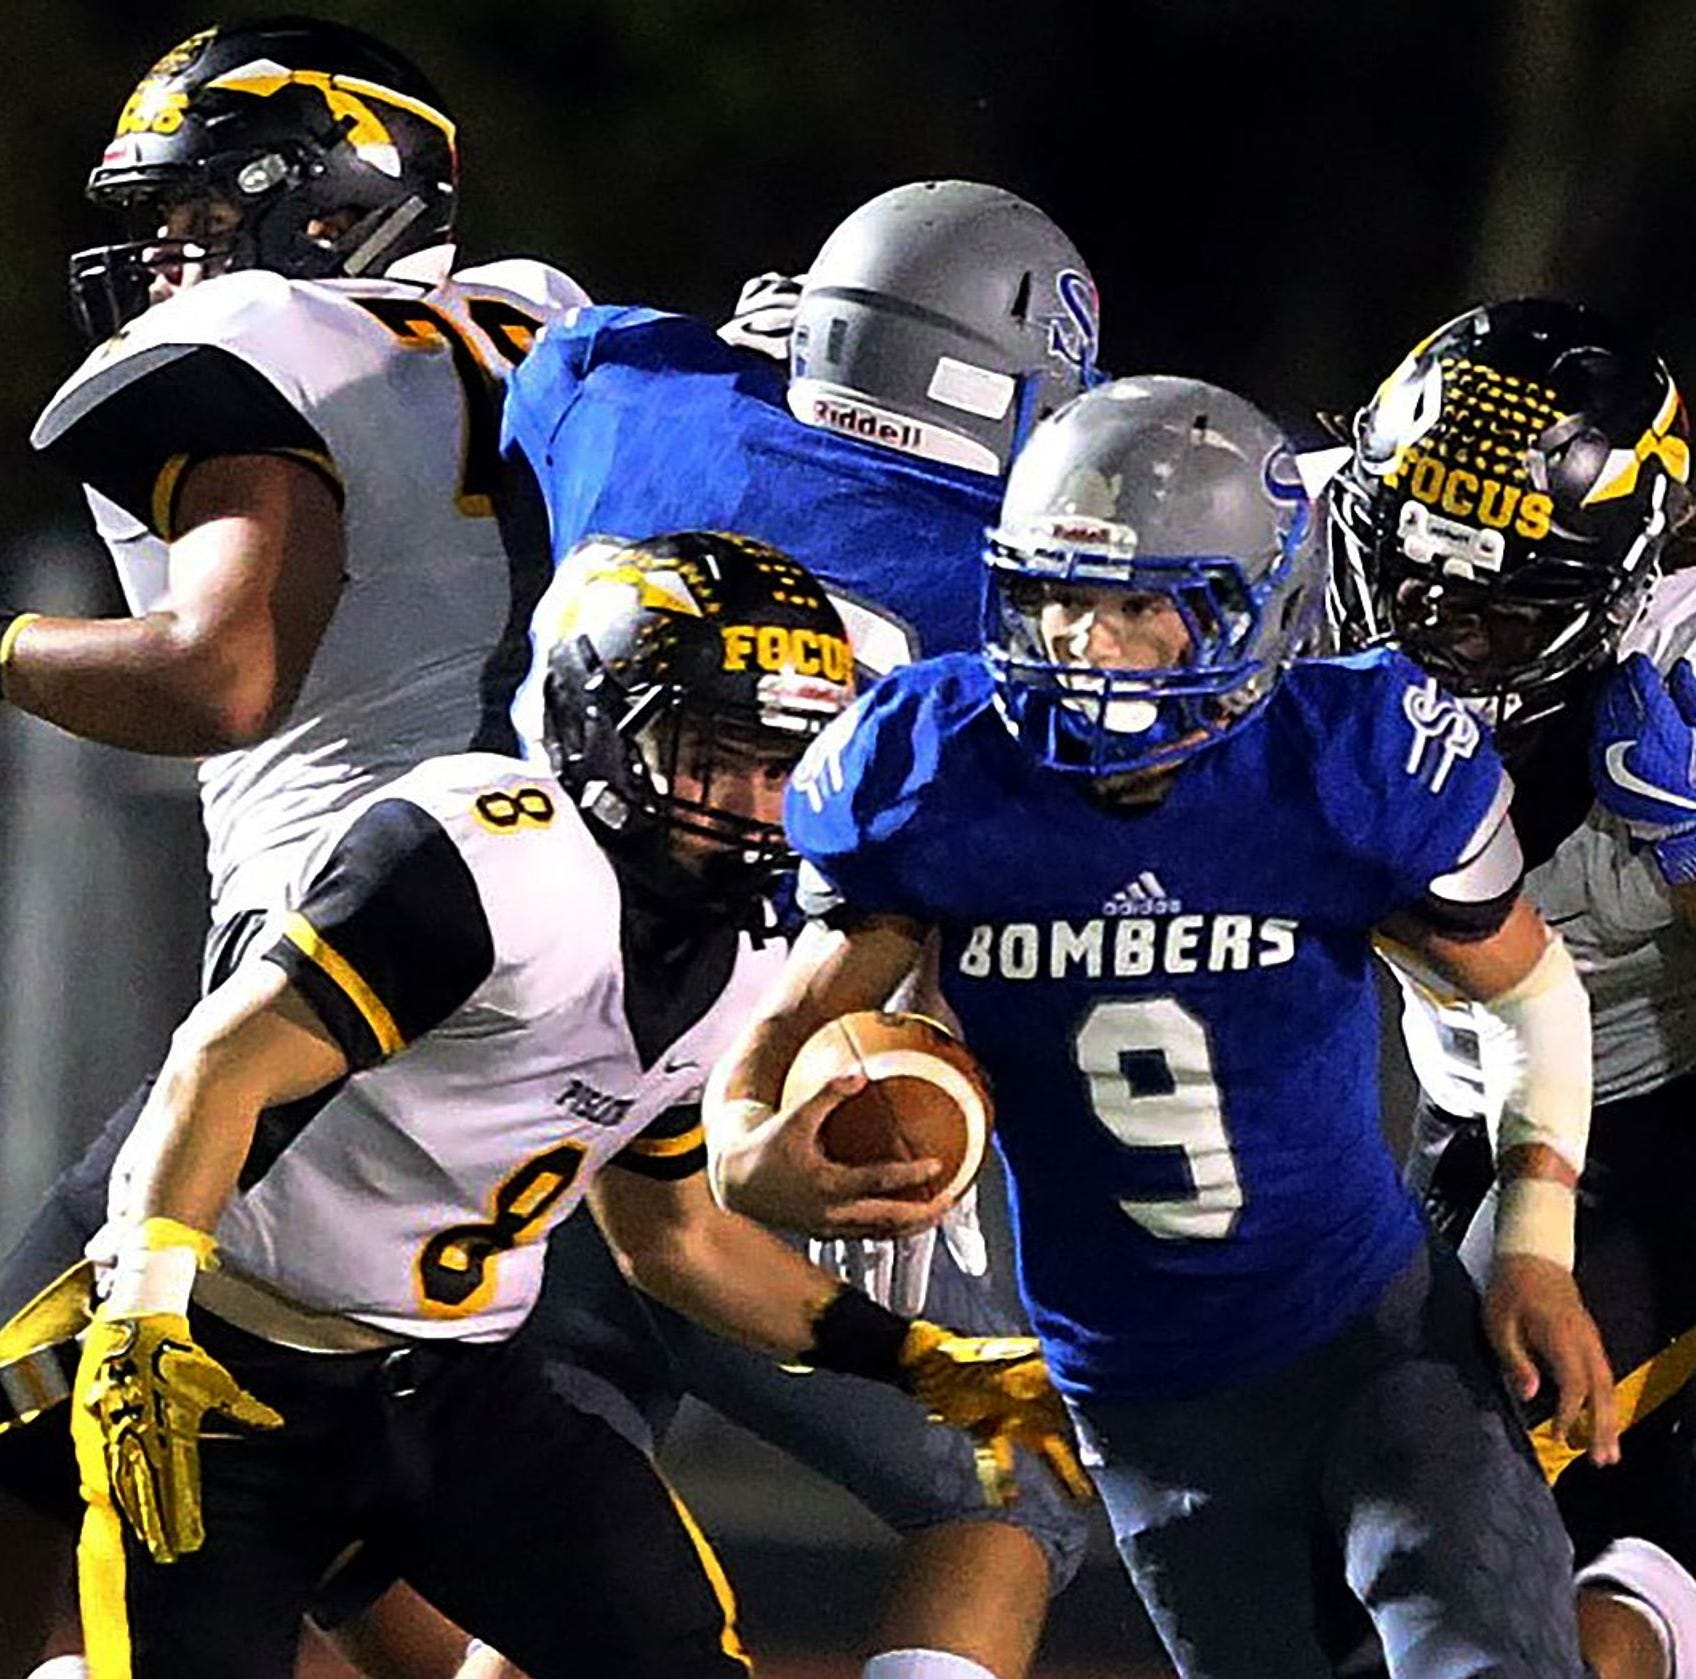 NJ football: How do Piscataway and Sayreville stack up for Friday's big game?